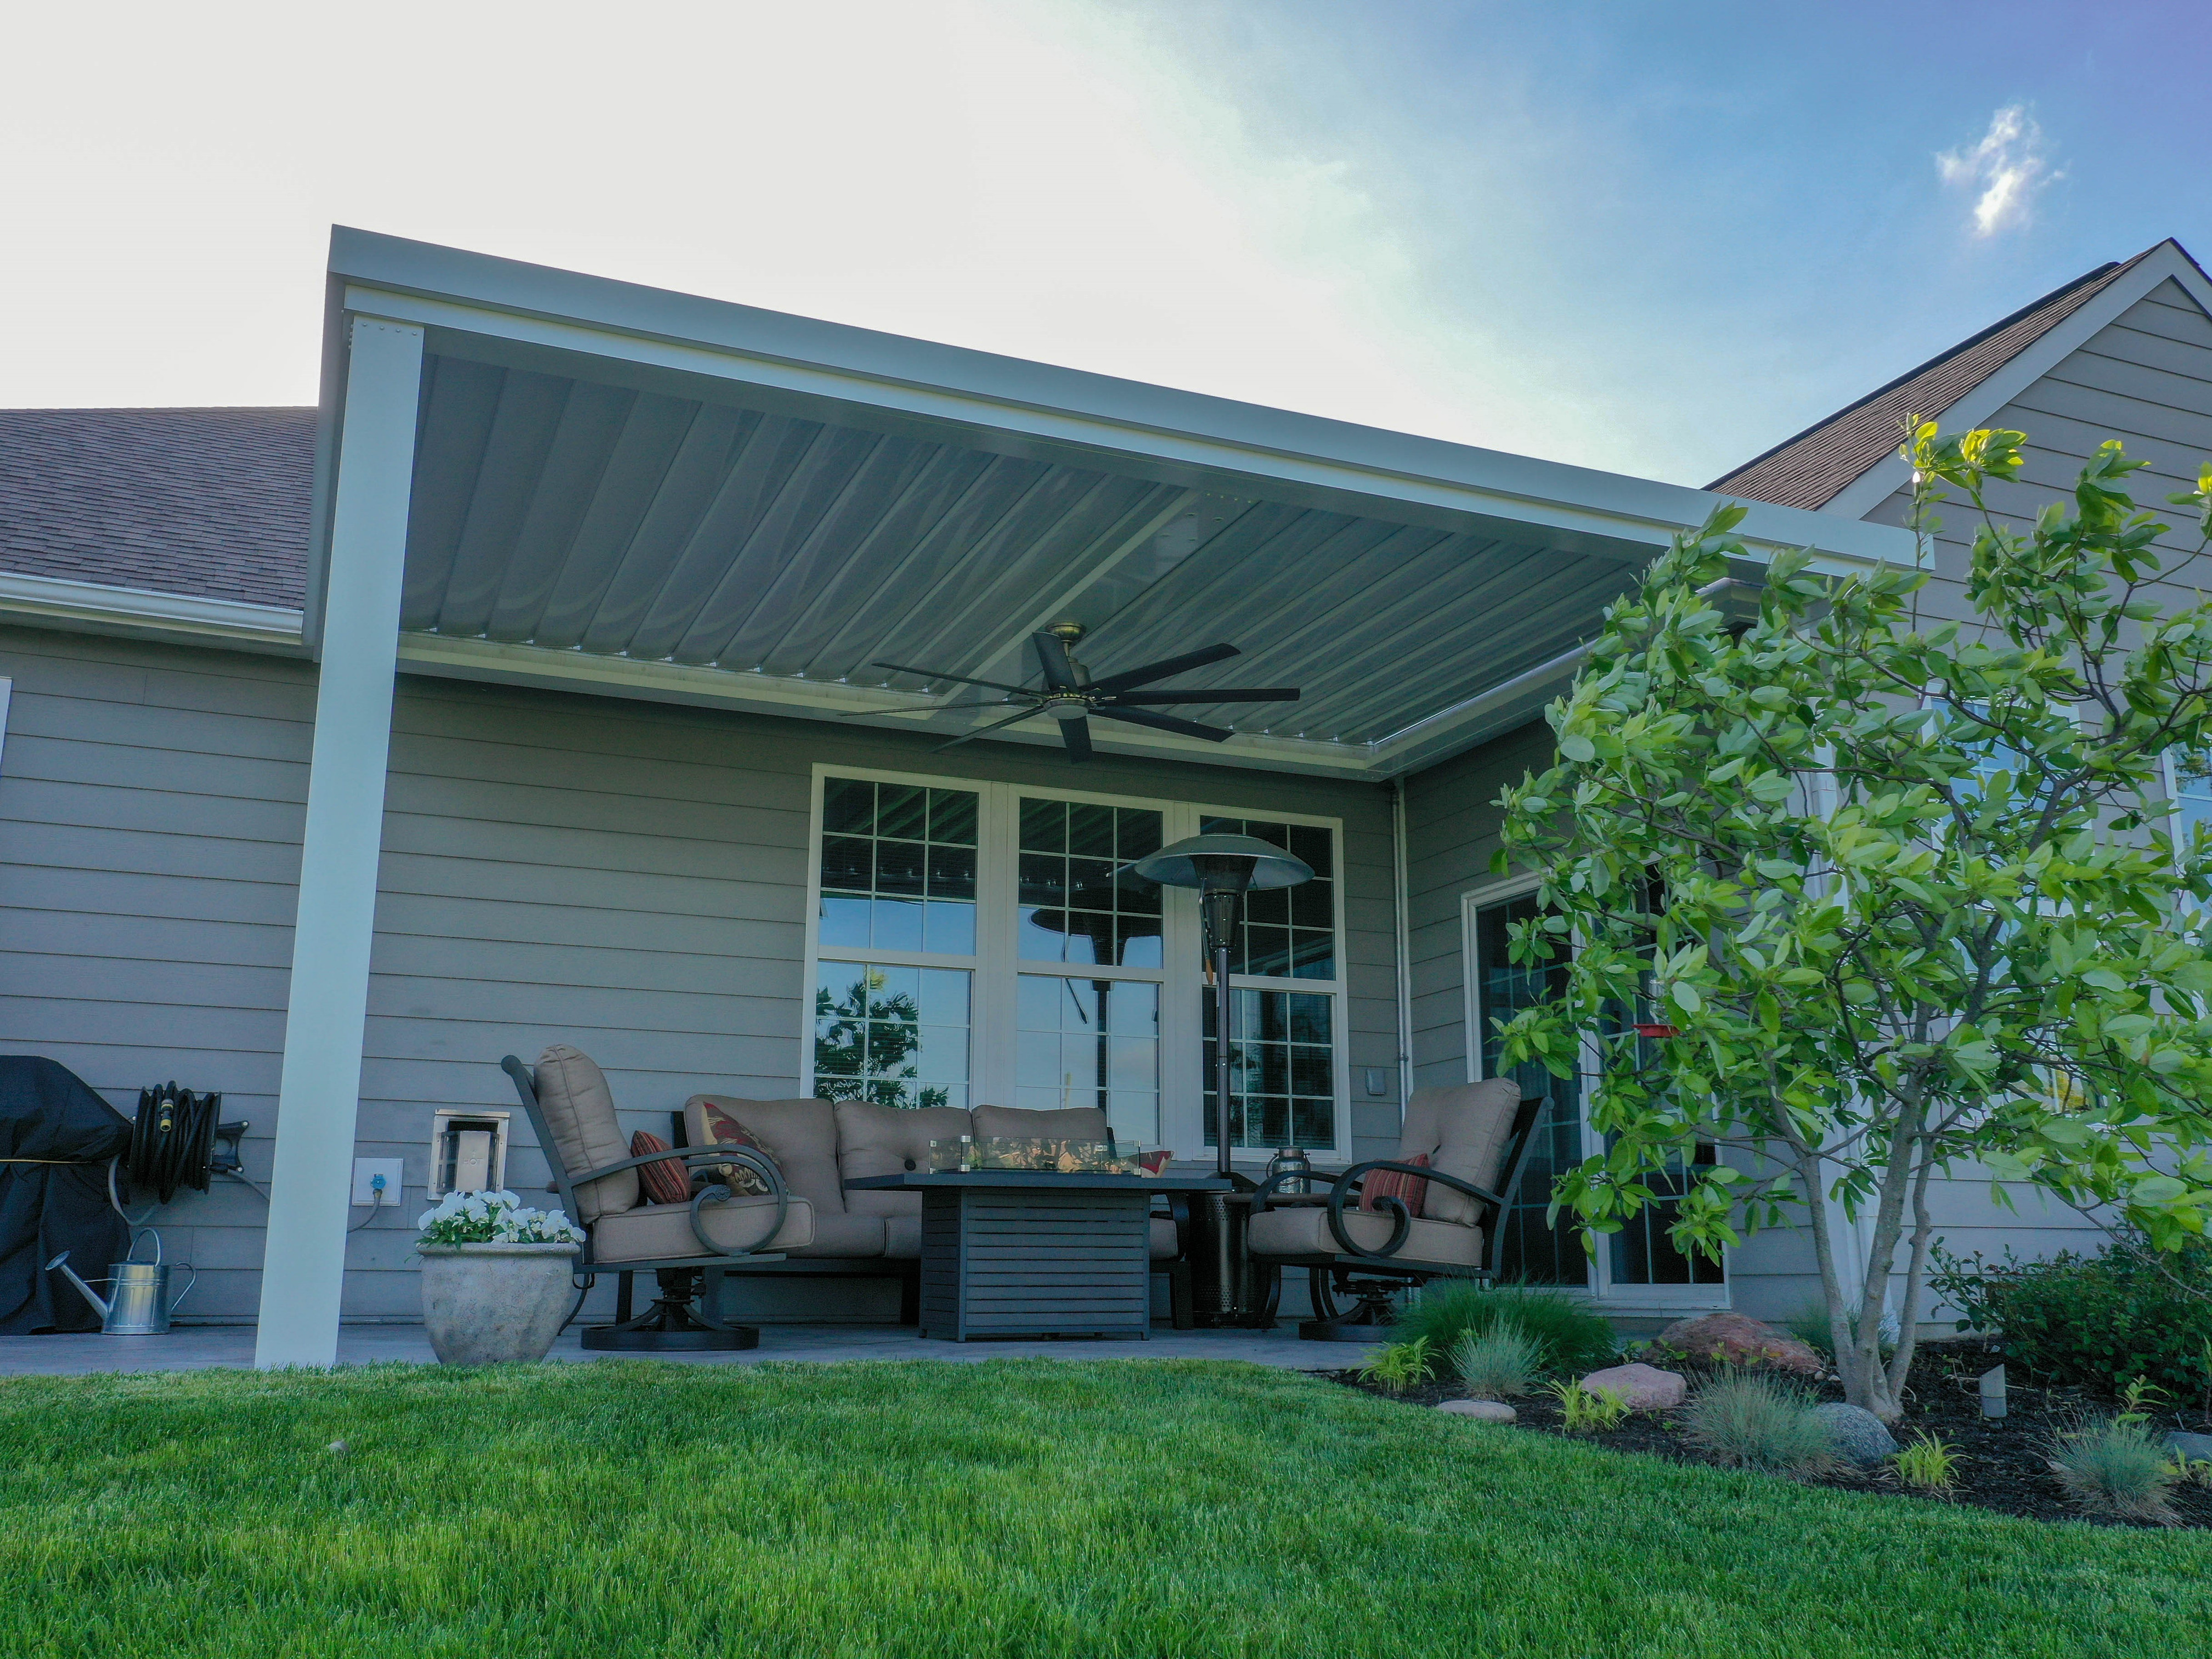 Retractable Awnings, Sunrooms, Screen porches, Louvered ...